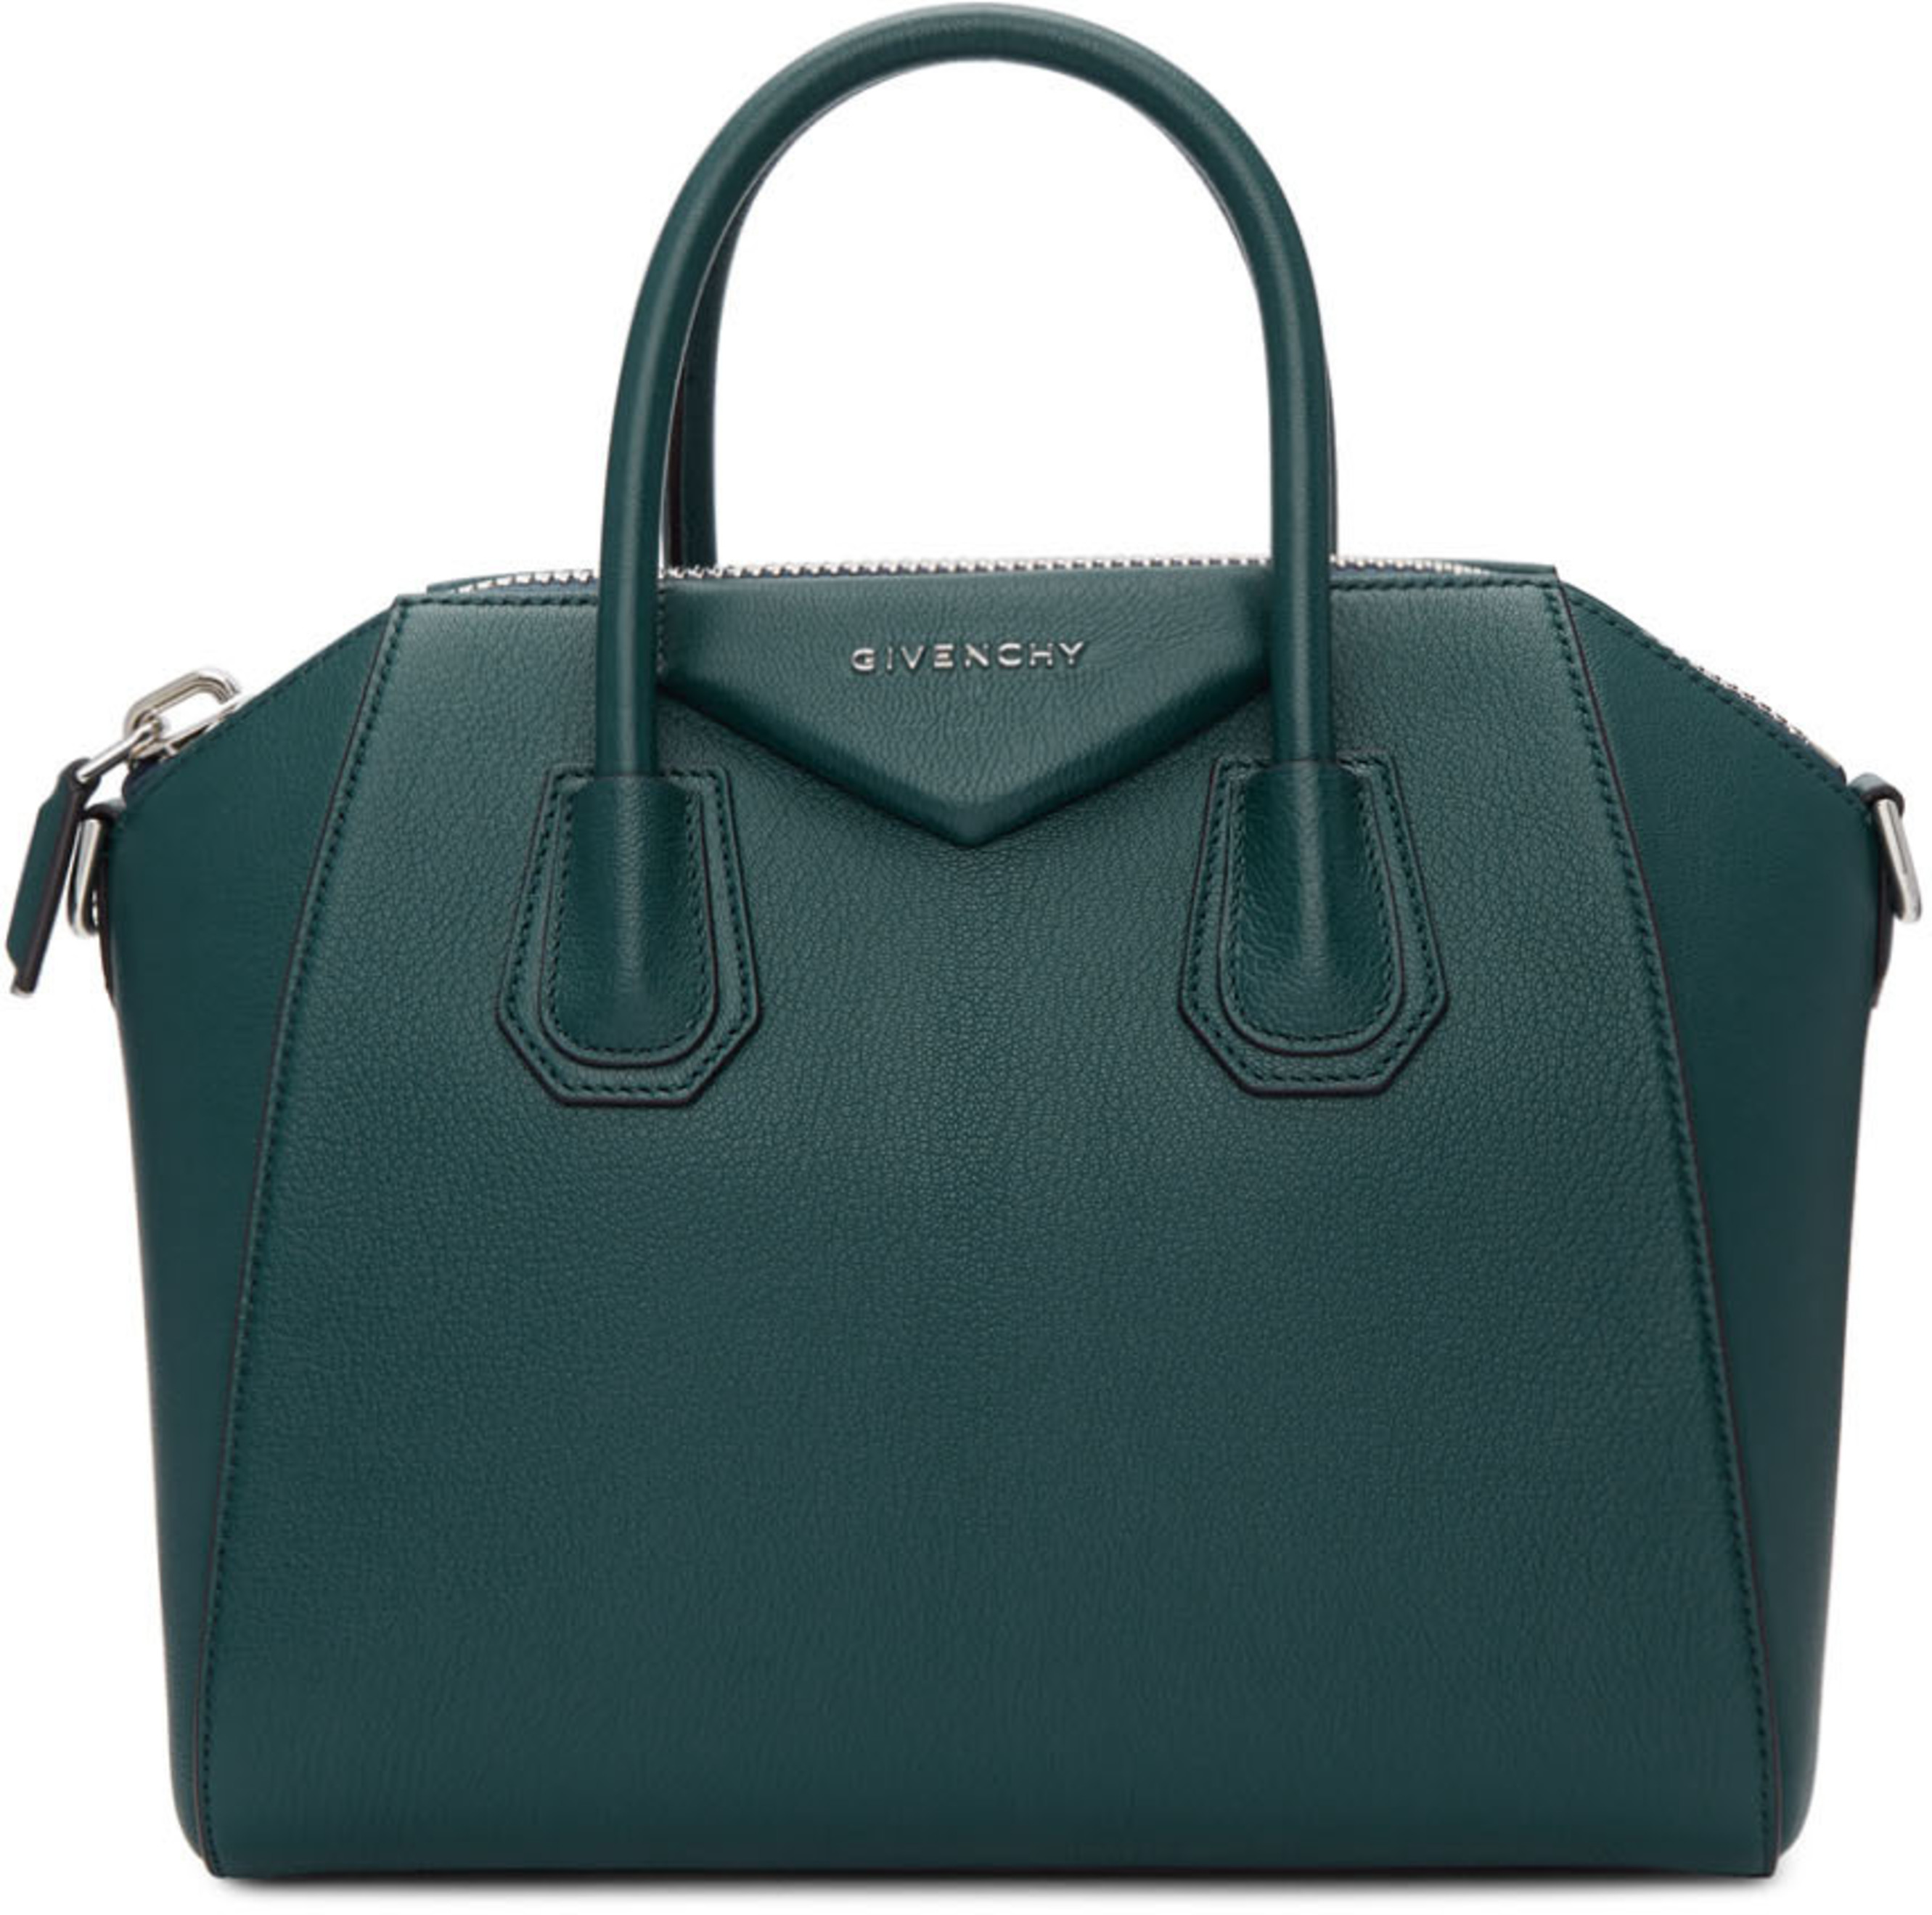 Givenchy bags for Women  249bfdd82ad06